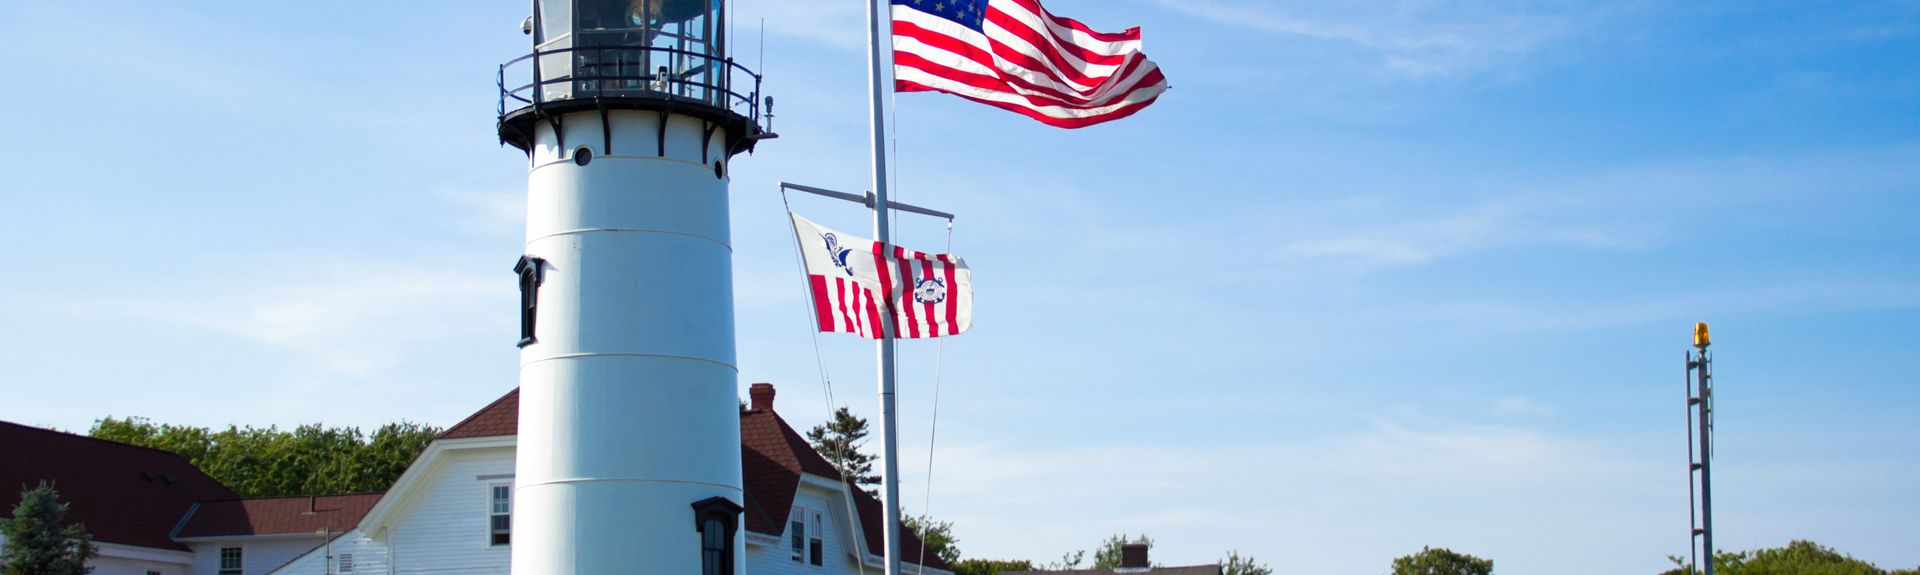 Chatham, Massachusetts, Estados Unidos